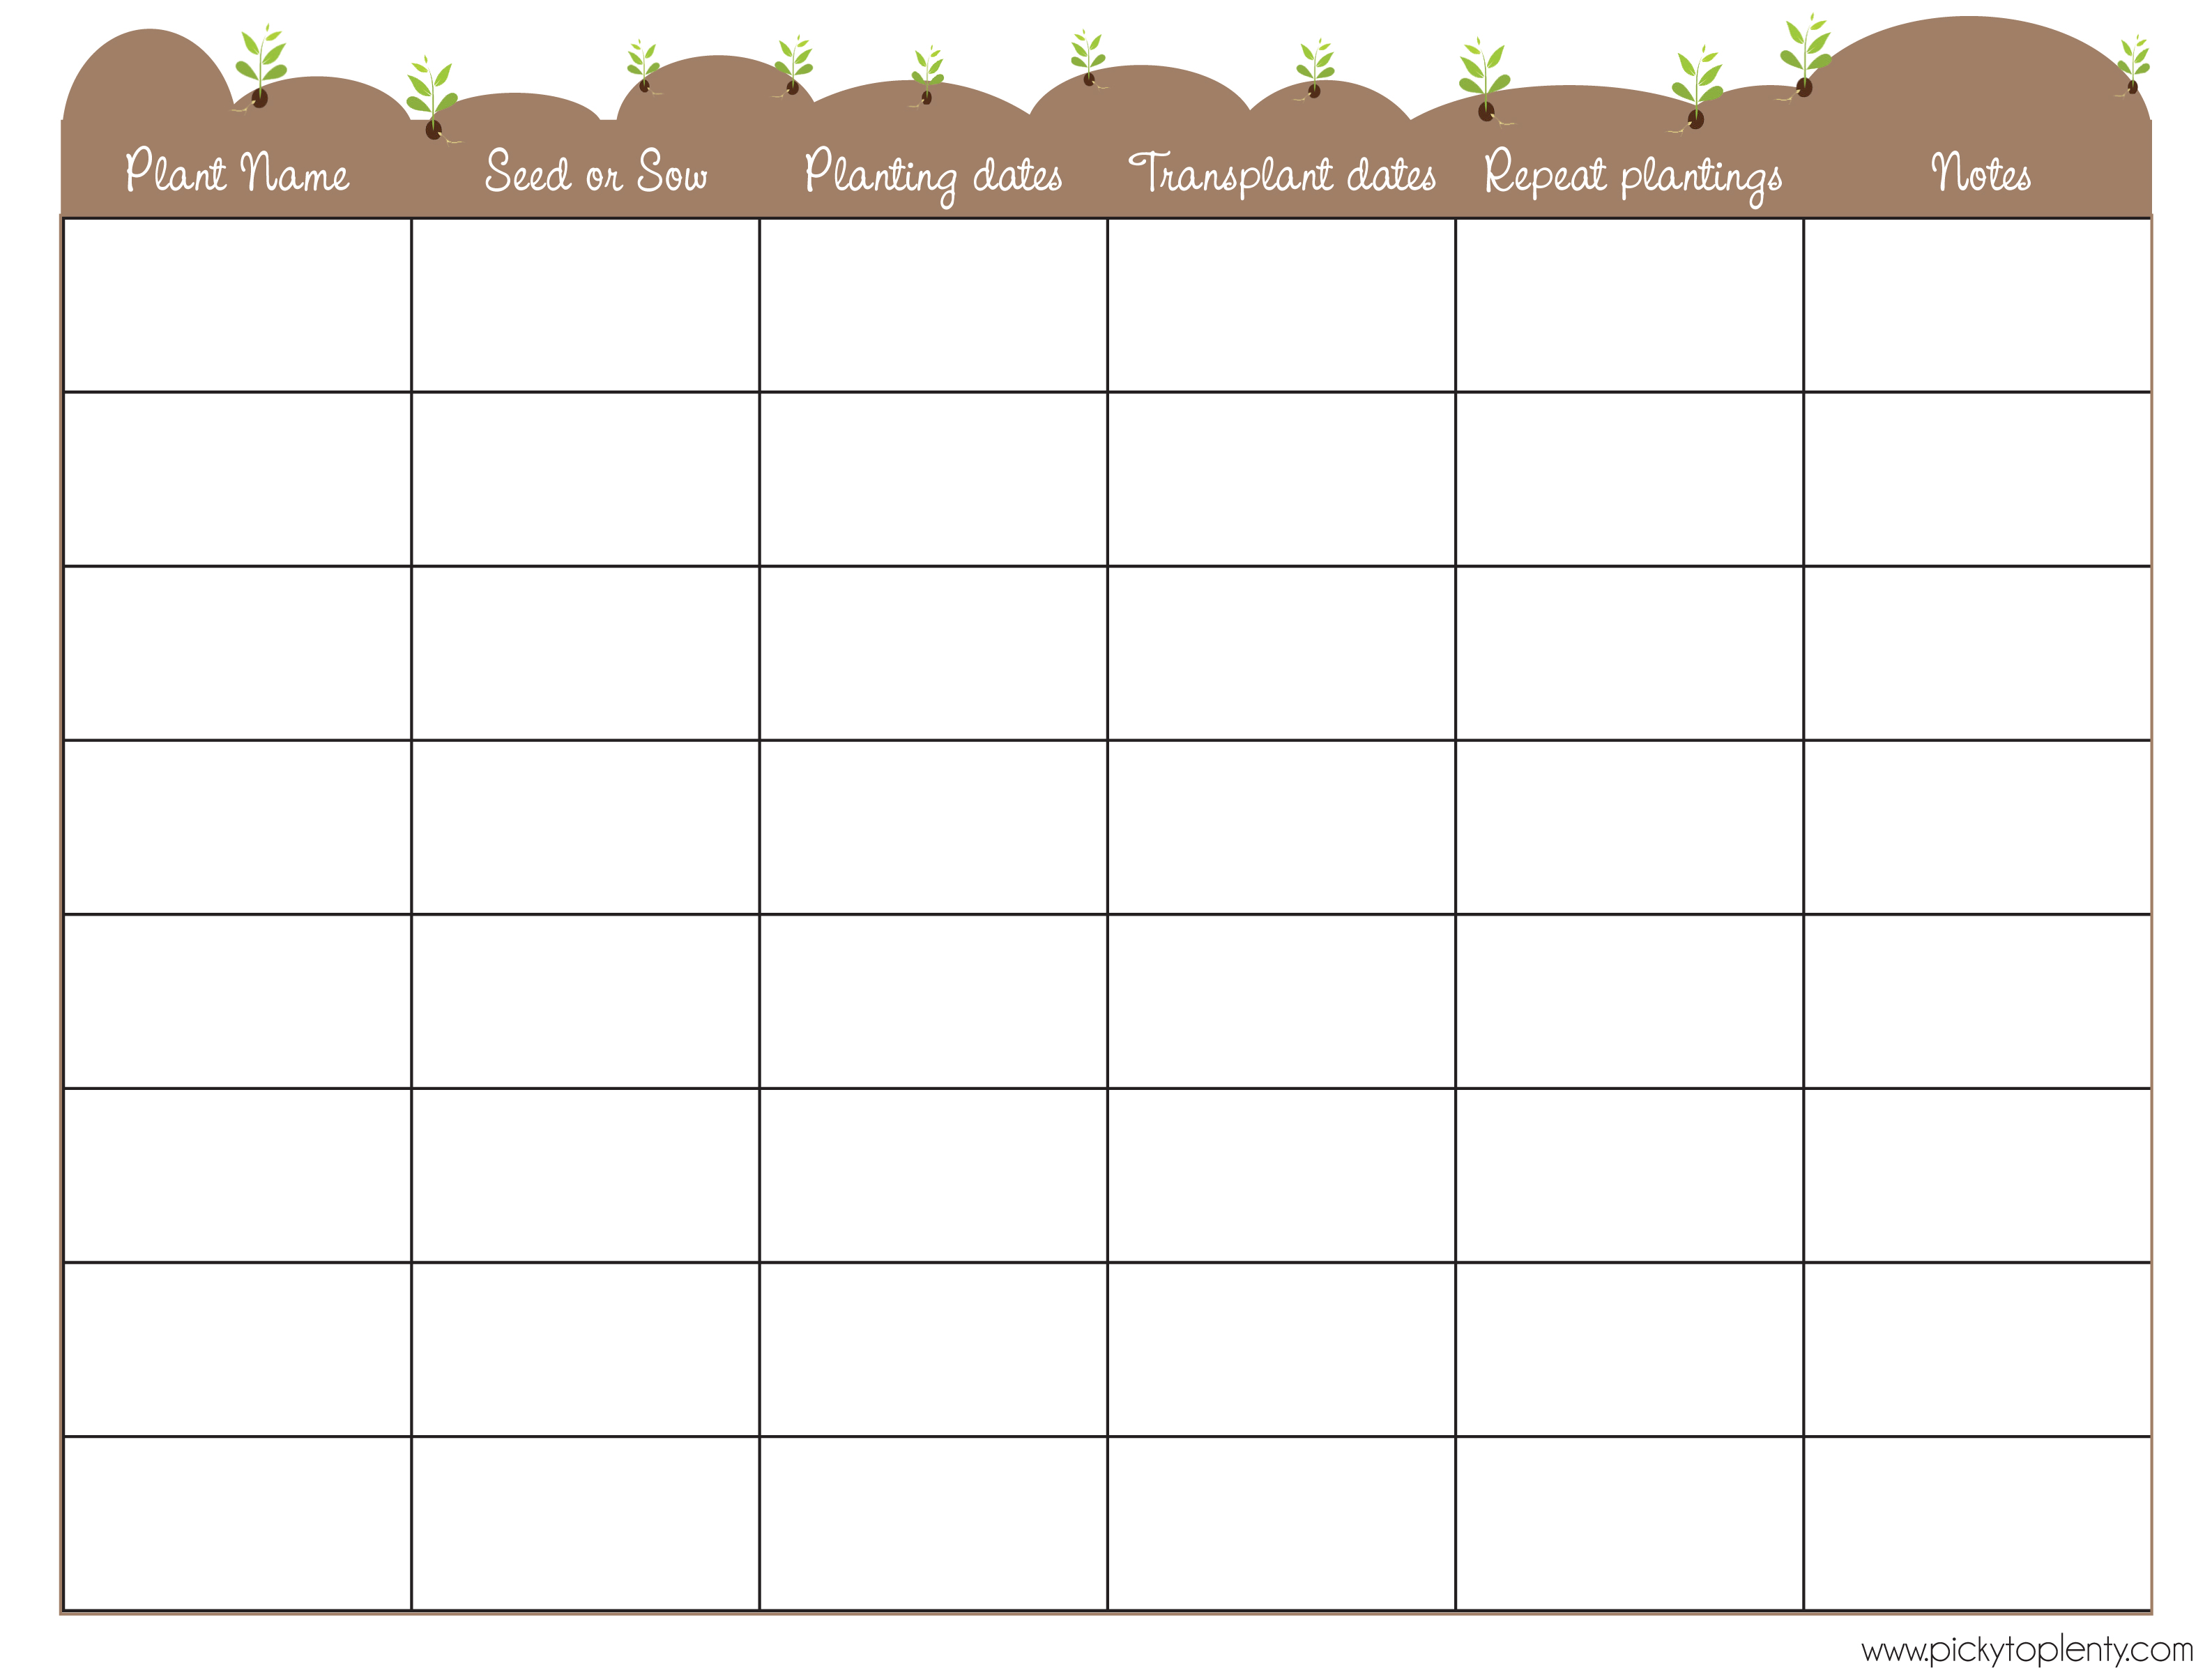 Click On The Thumbnail To Download My Seed Planner Template Garden